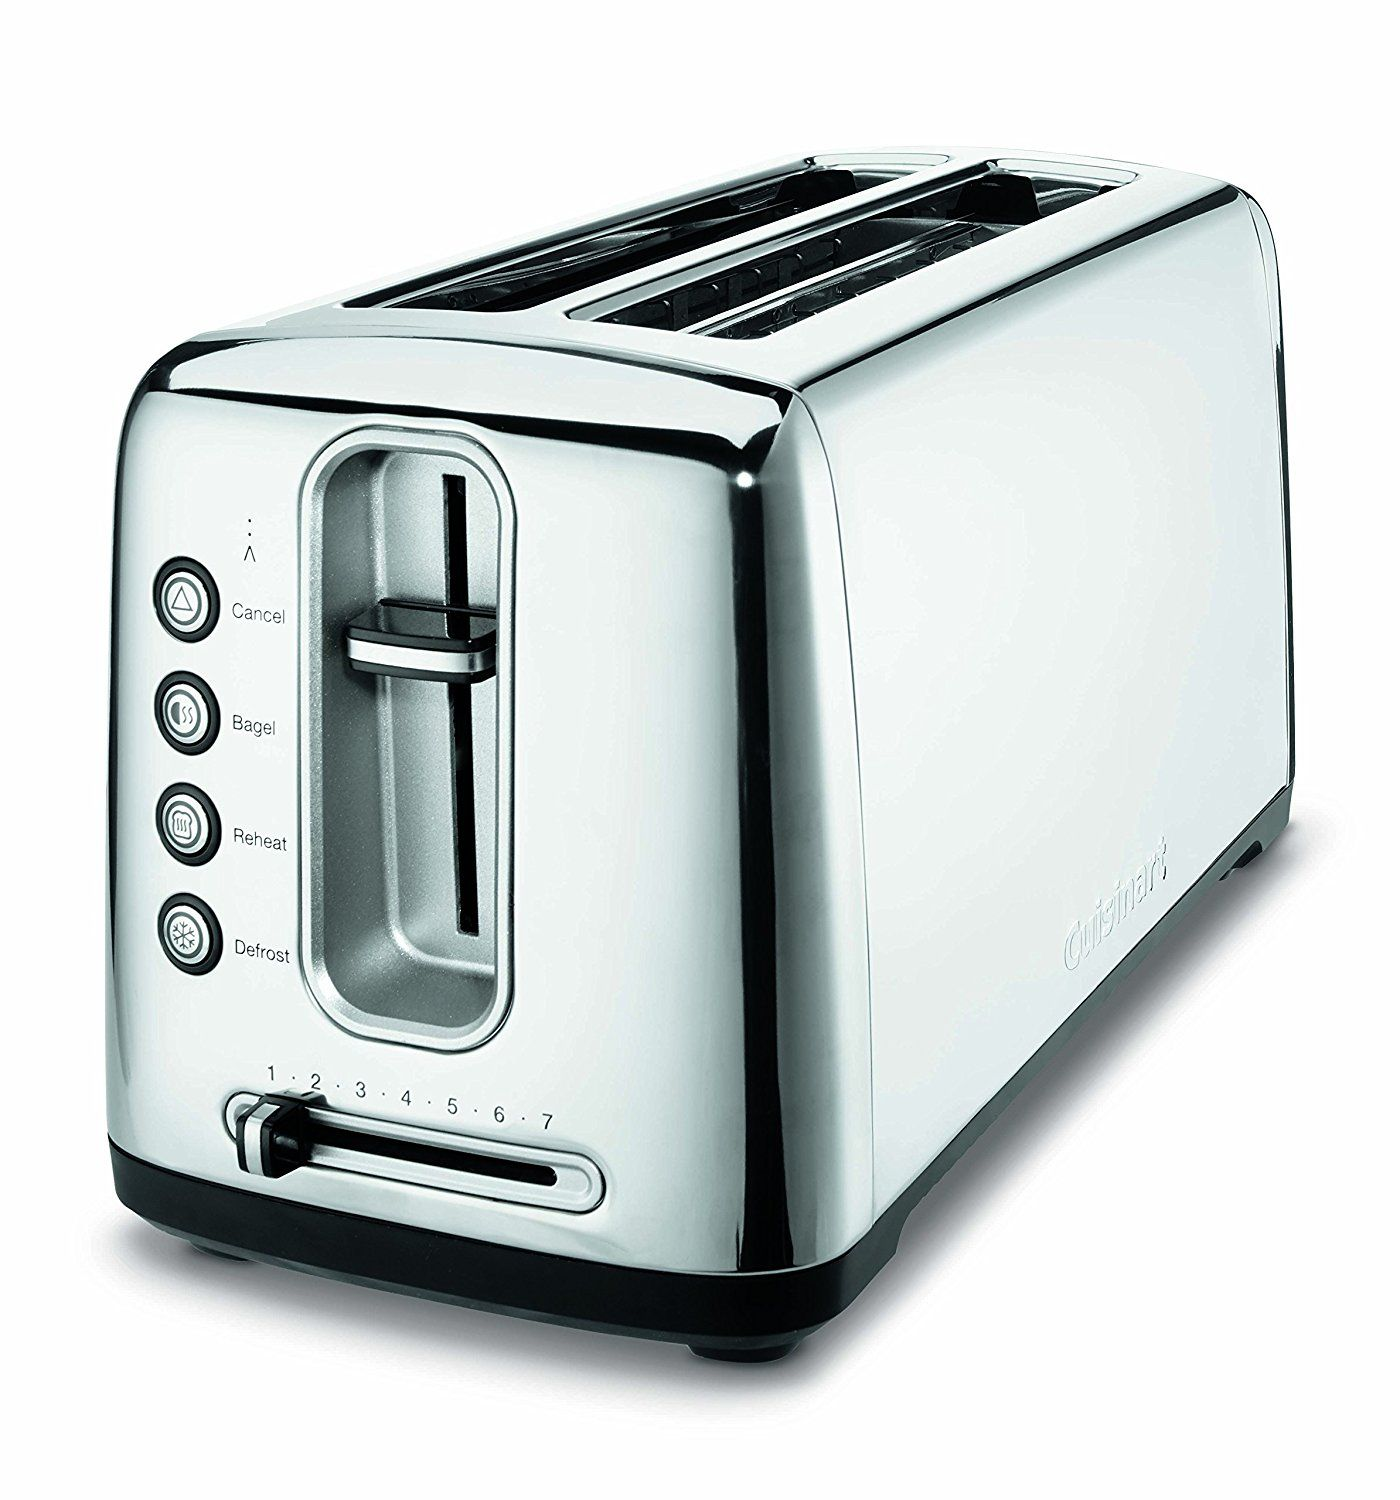 watch toasters cuisinart stainless metal youtube classic steel toaster slice